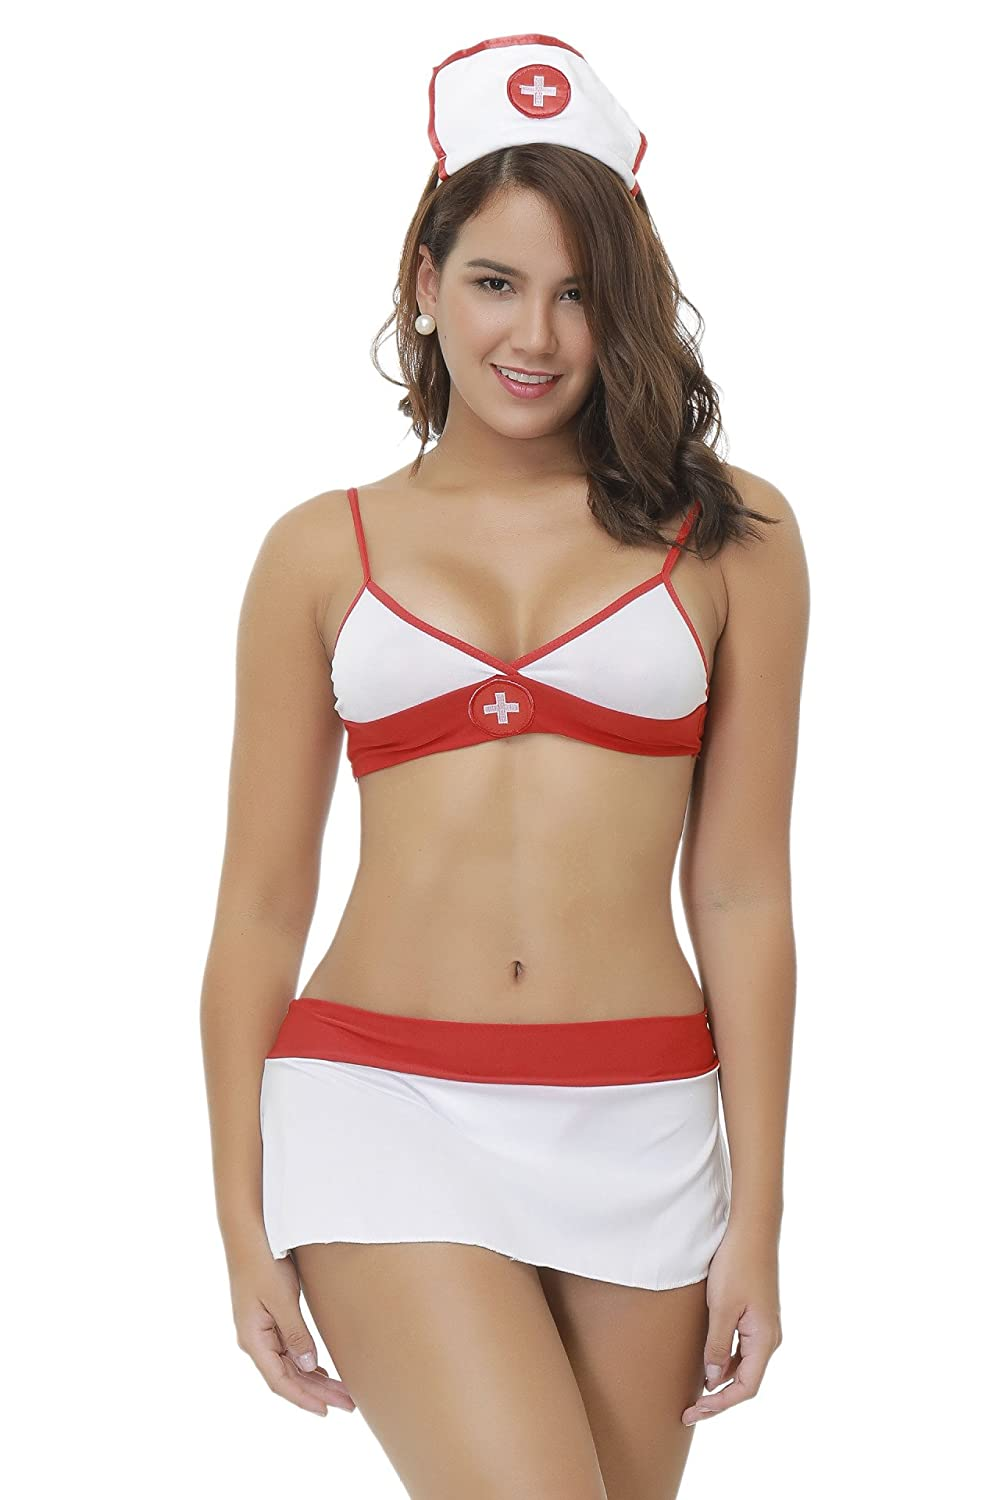 4be0b4bb218 Amazon.com  Rookay Sexy Nurse Costumes for Women Naughty Nurse Outfit Lingerie  Plus Size Miniskirt Bra and Panty Set  Clothing